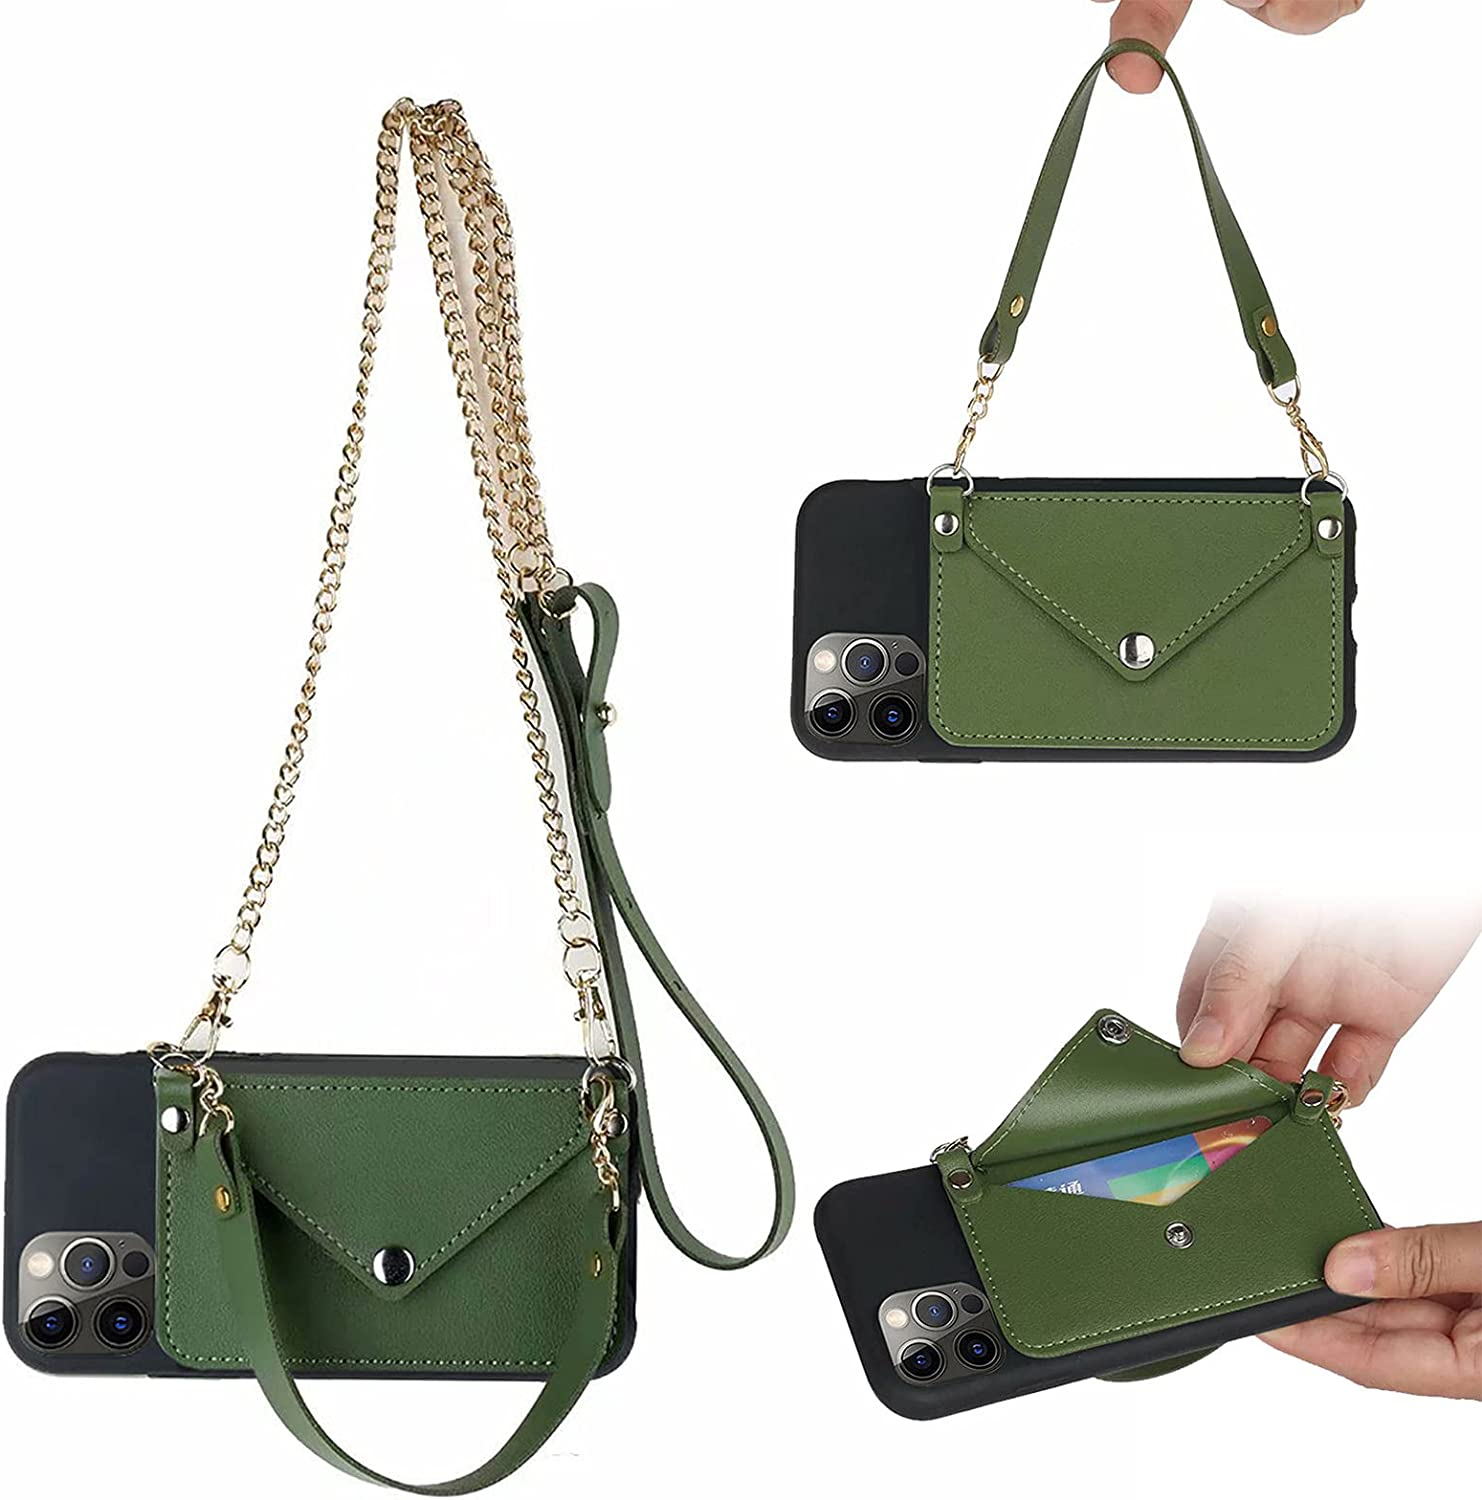 Ostop Compatible with Moto G 5G Wallet Case Crossbody Leather Adjustable and Detachable Shoulder Strap for Women,Ultra Thin Purse Silicone Soft Back Case with Credit Card,Green